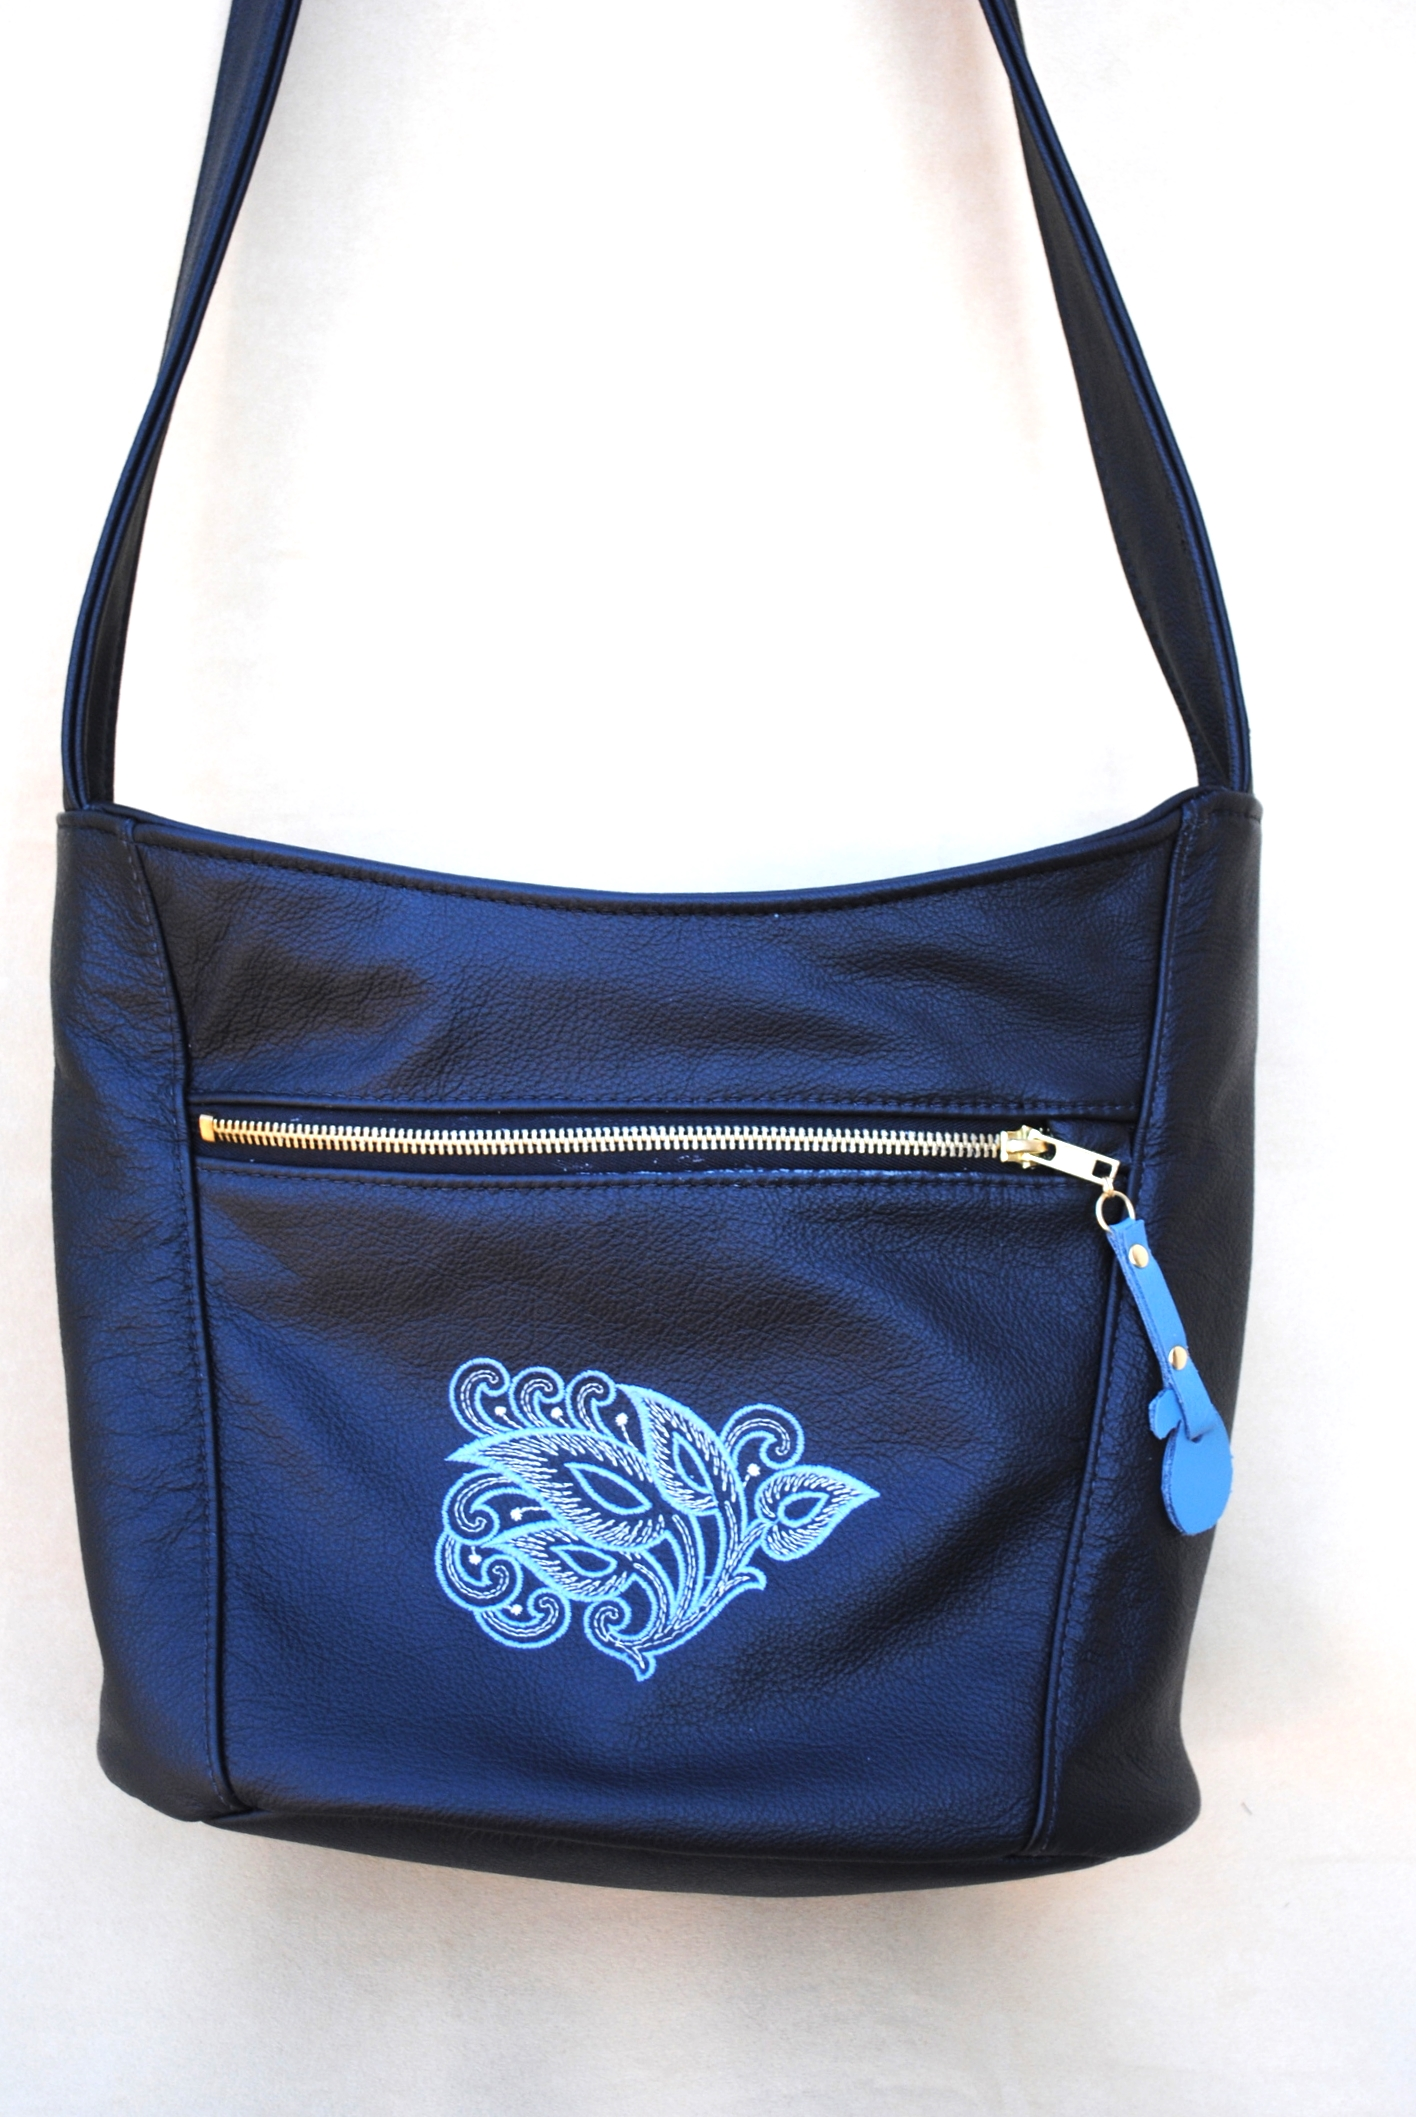 All Leather Bucket Purse with Embroidery